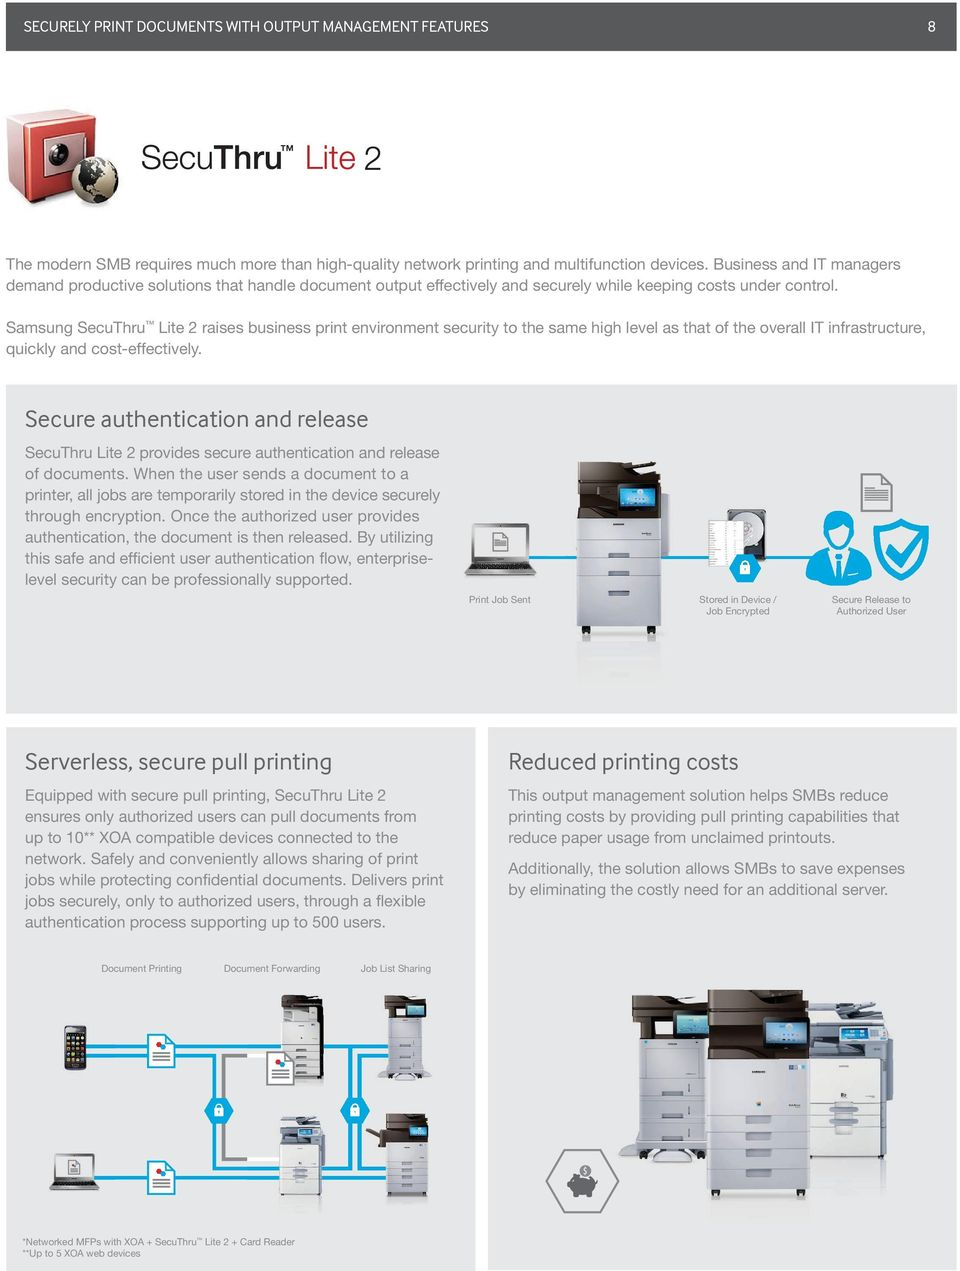 Samsung SecuThru Lite 2 raises business print environment security to the same high level as that of the overall IT infrastructure, quickly and cost-effectively.